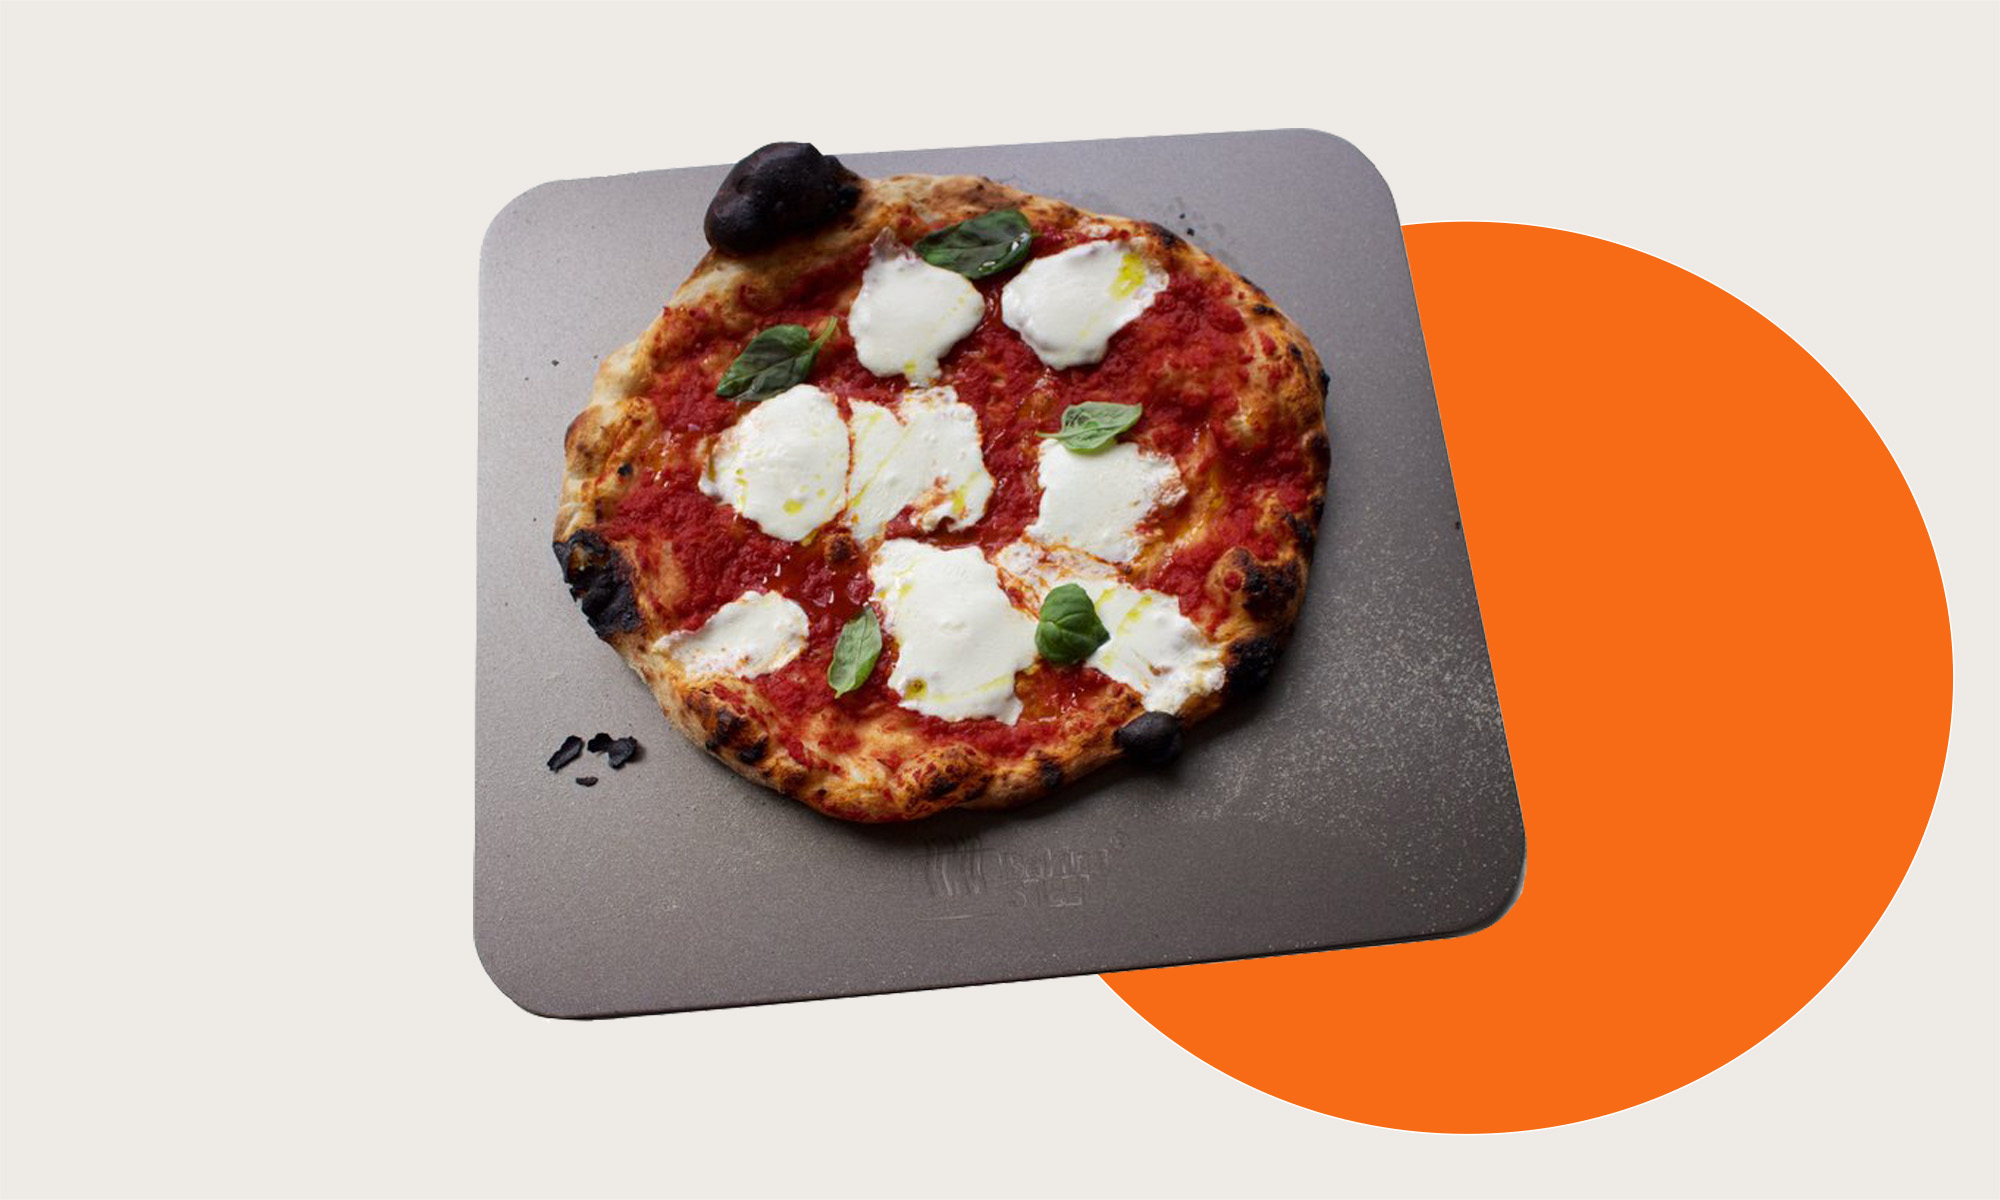 A baking steel with a margherita pizza